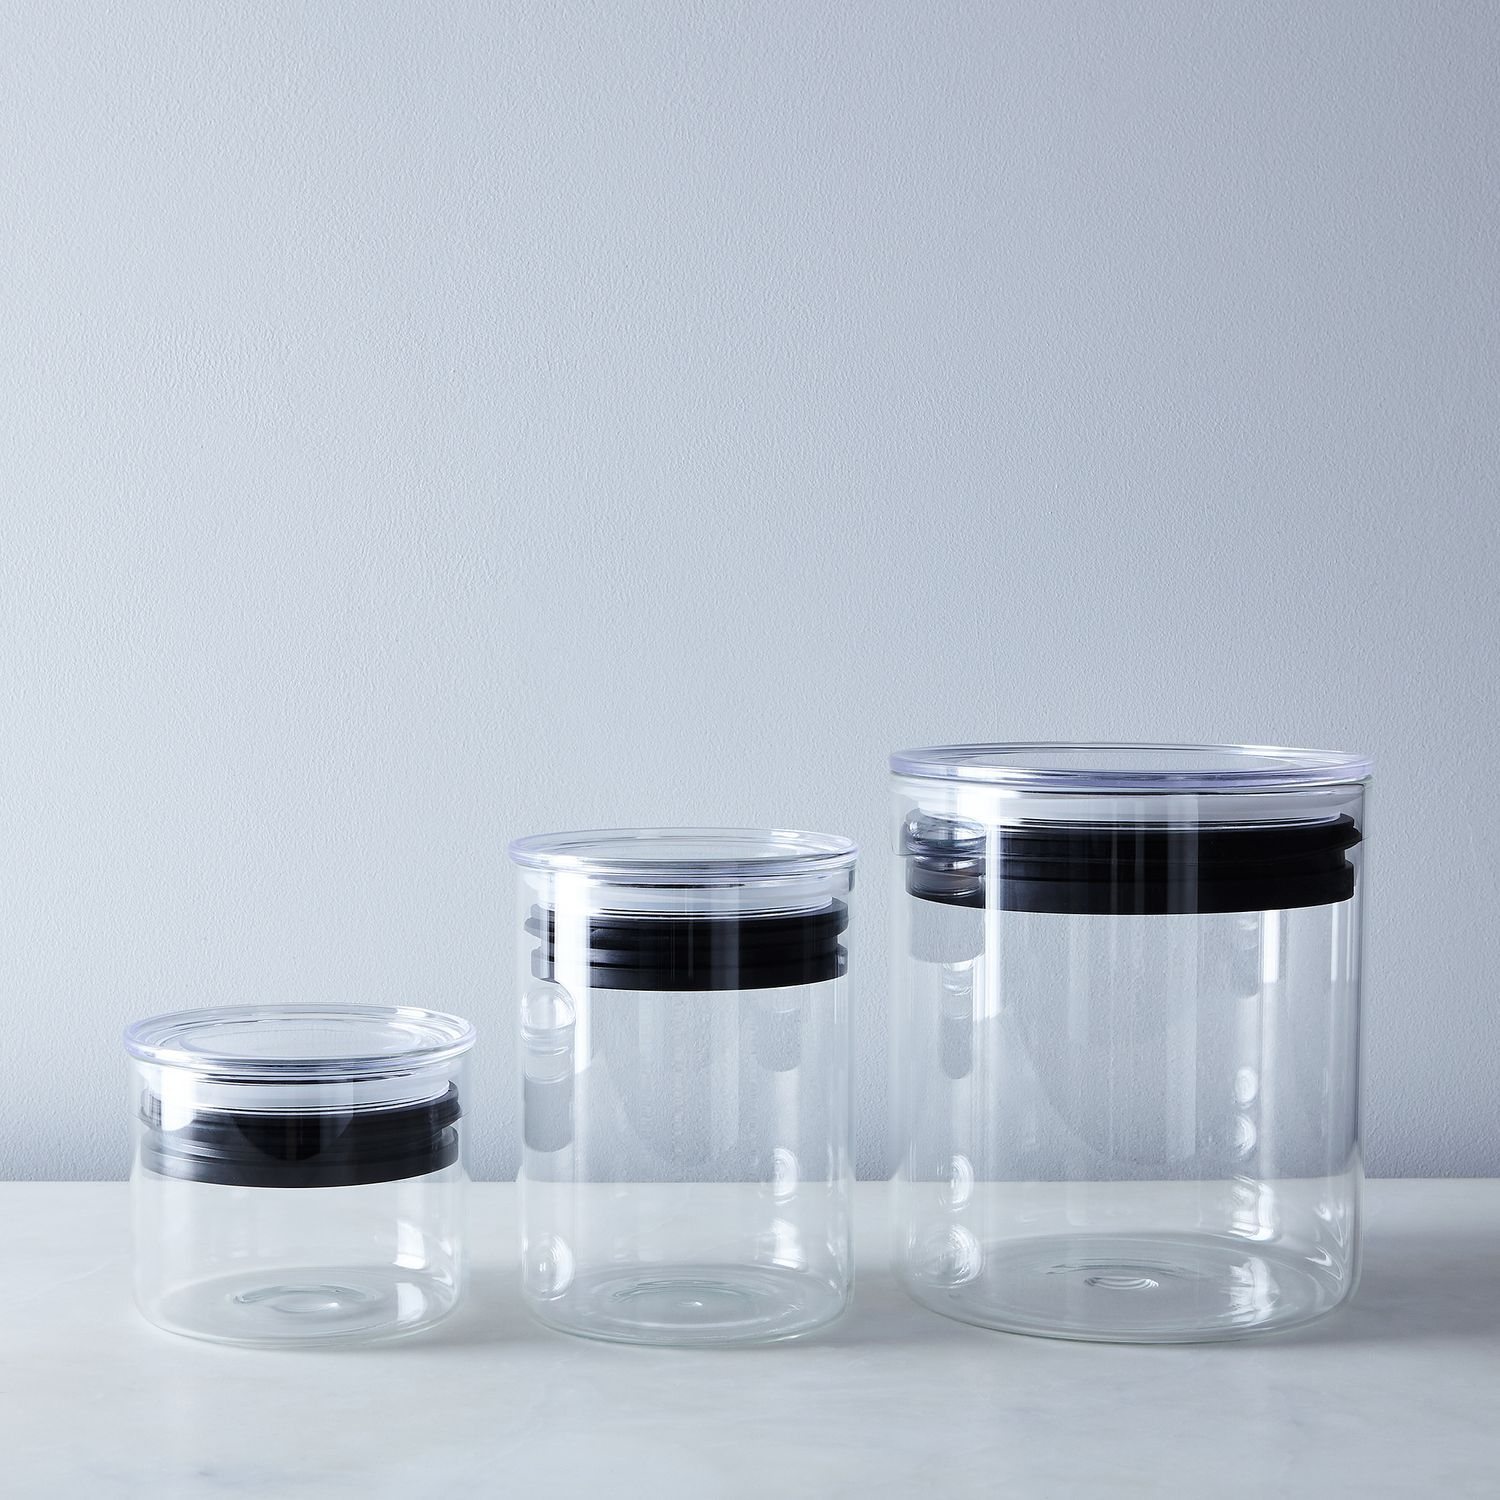 Airscape Glass Food Storage Containers Pinterest Airtight food